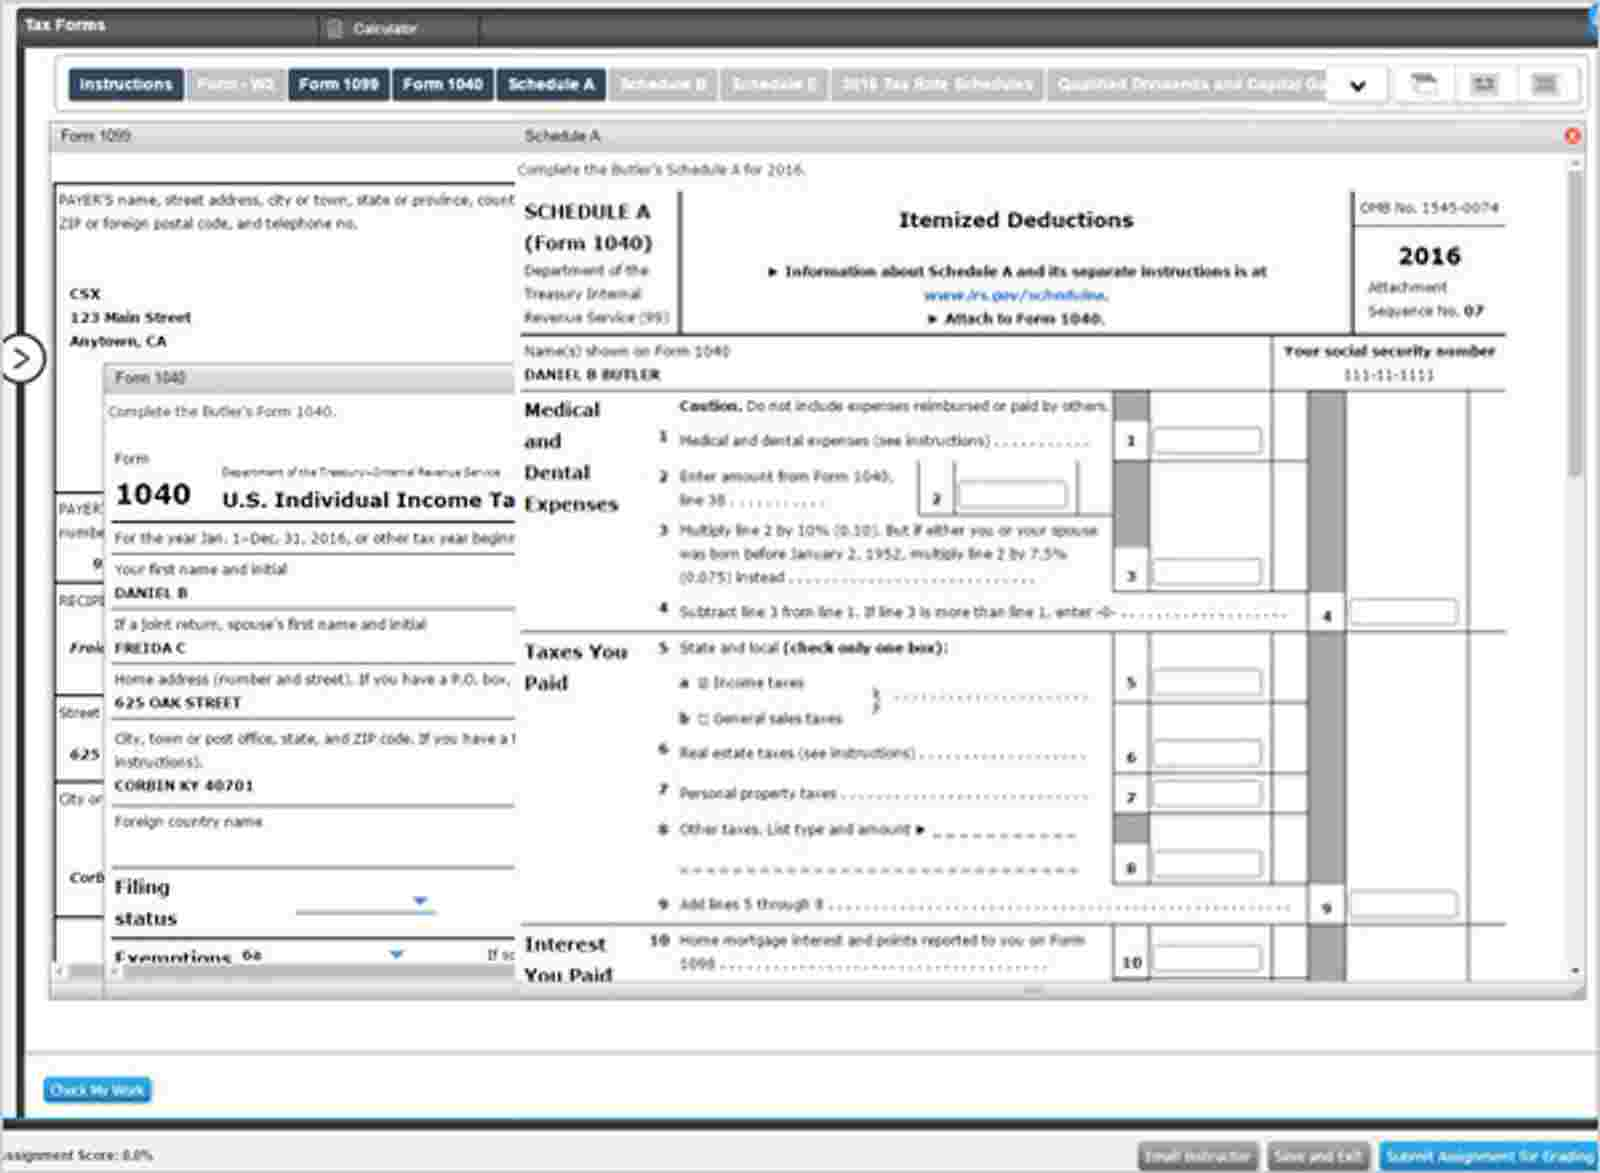 Tax Forms screen grab